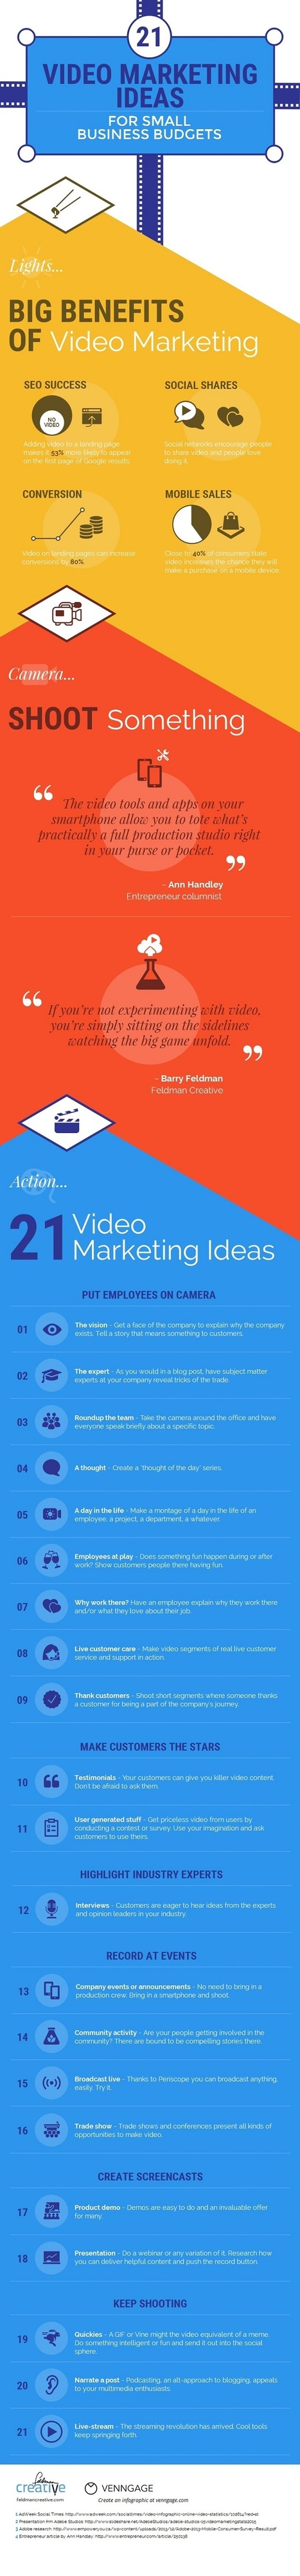 21 Video Marketing Ideas for Small-Business Budgets #Infographic | MarketingHits | Scoop.it